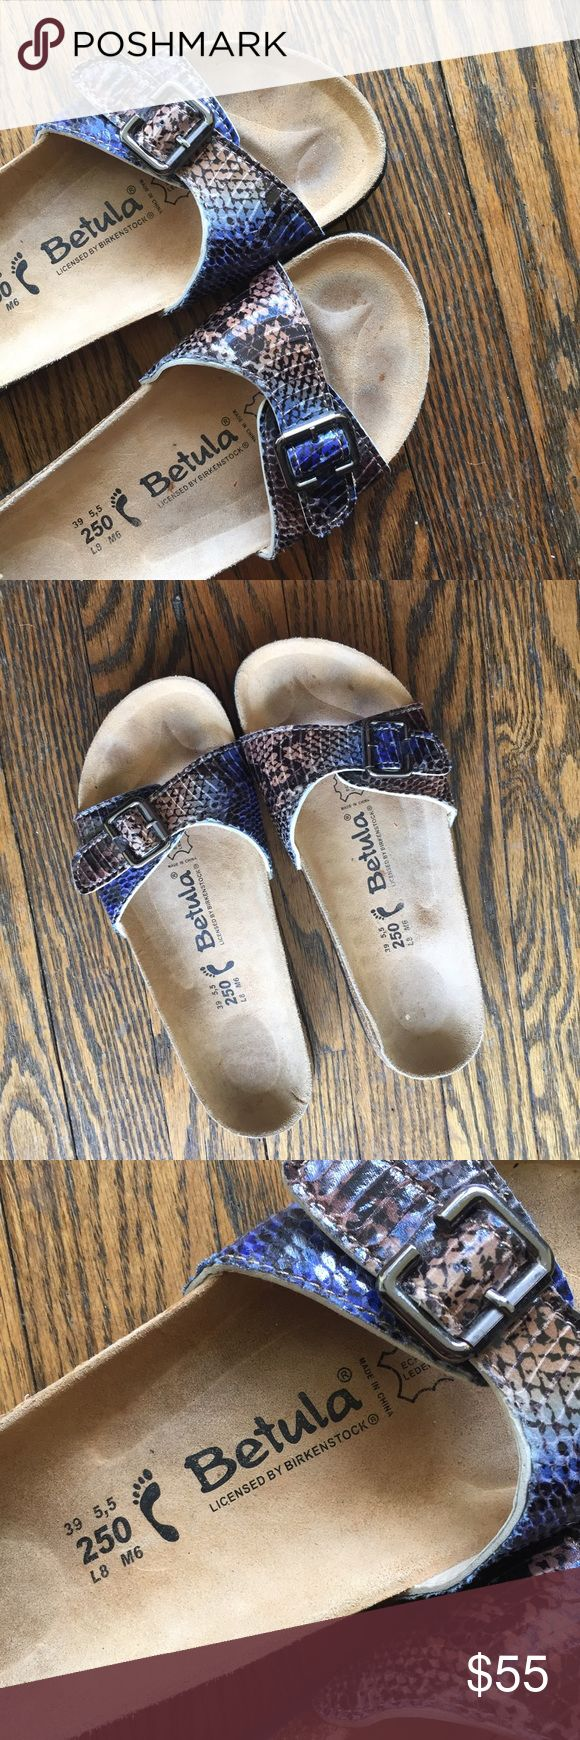 Birkenstock Betula sandals Bloggers Fav! Brand new pair of Birkenstock Betula sandals. The style is Madrid. Must have this spring/summer! Love this faux snake print pattern. Size 8. No trades. Birkenstock Shoes Sandals